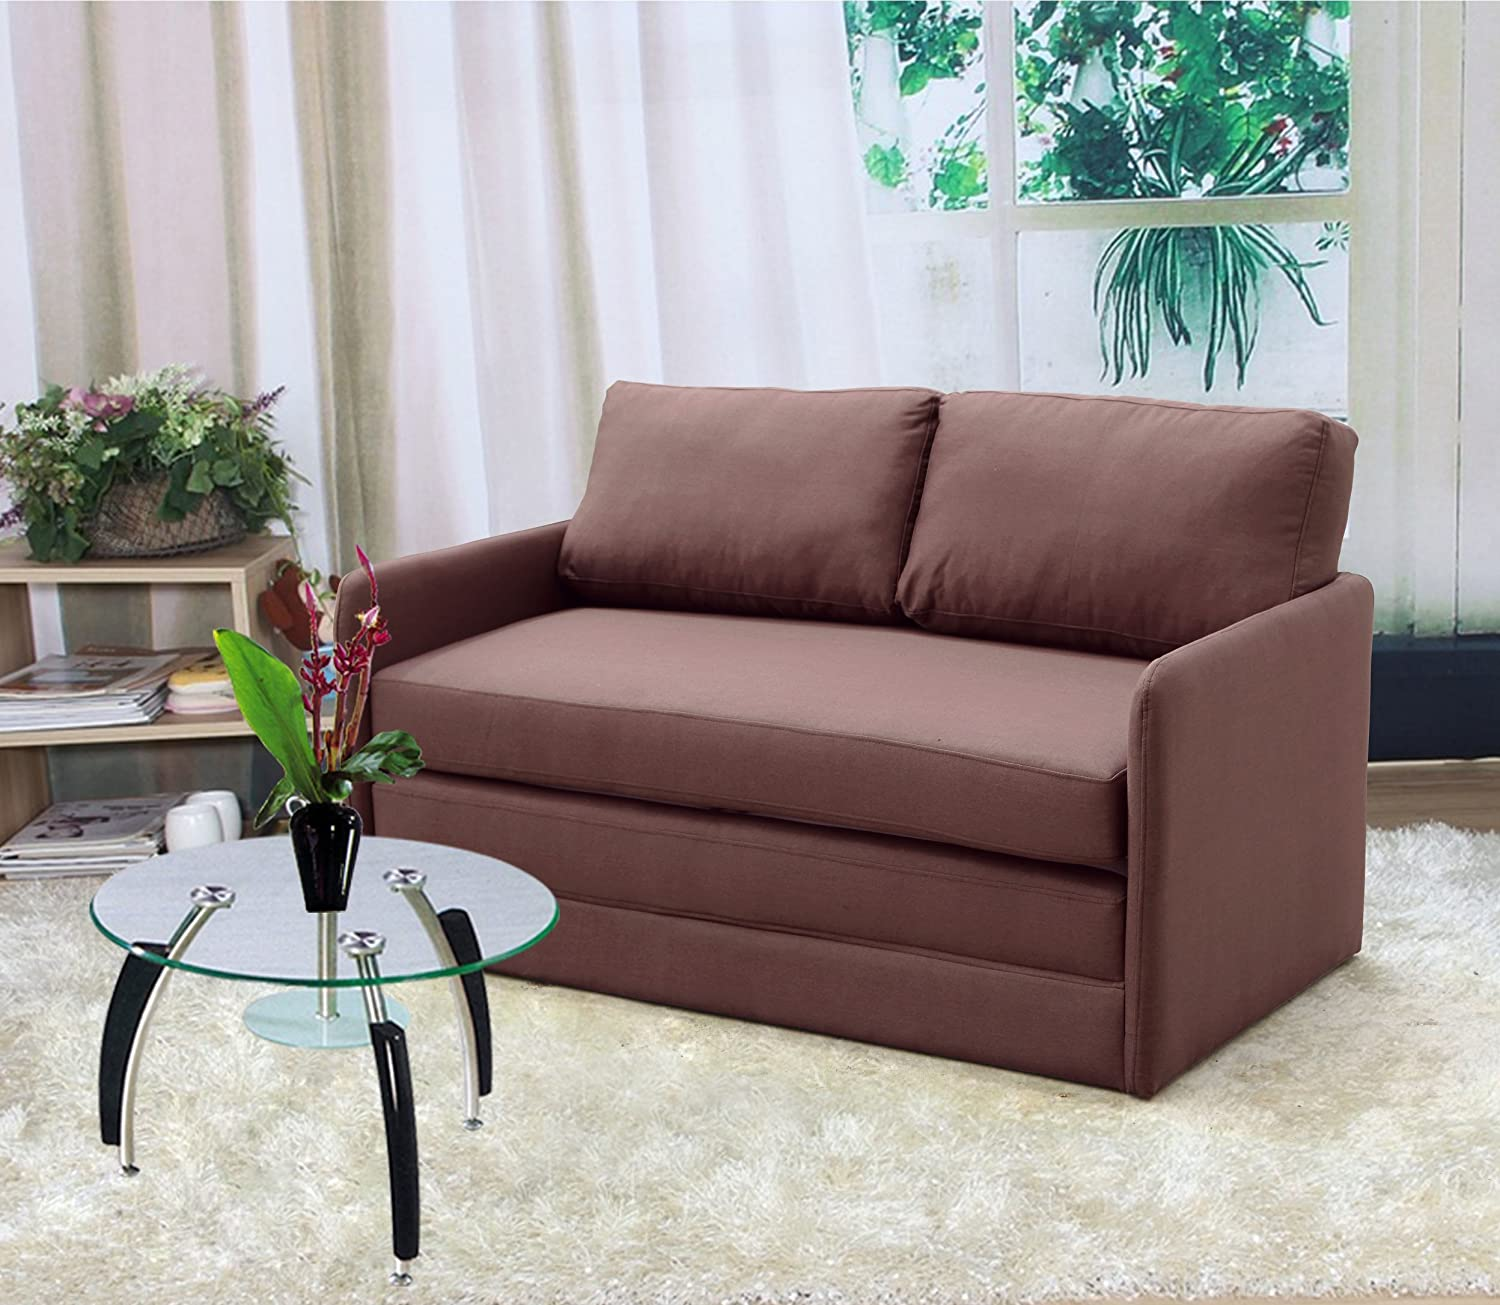 Amazon com us pride furniture kathy reversible 5 1 foam fabric loveseat and sofa bed couch sleeper brown kitchen dining